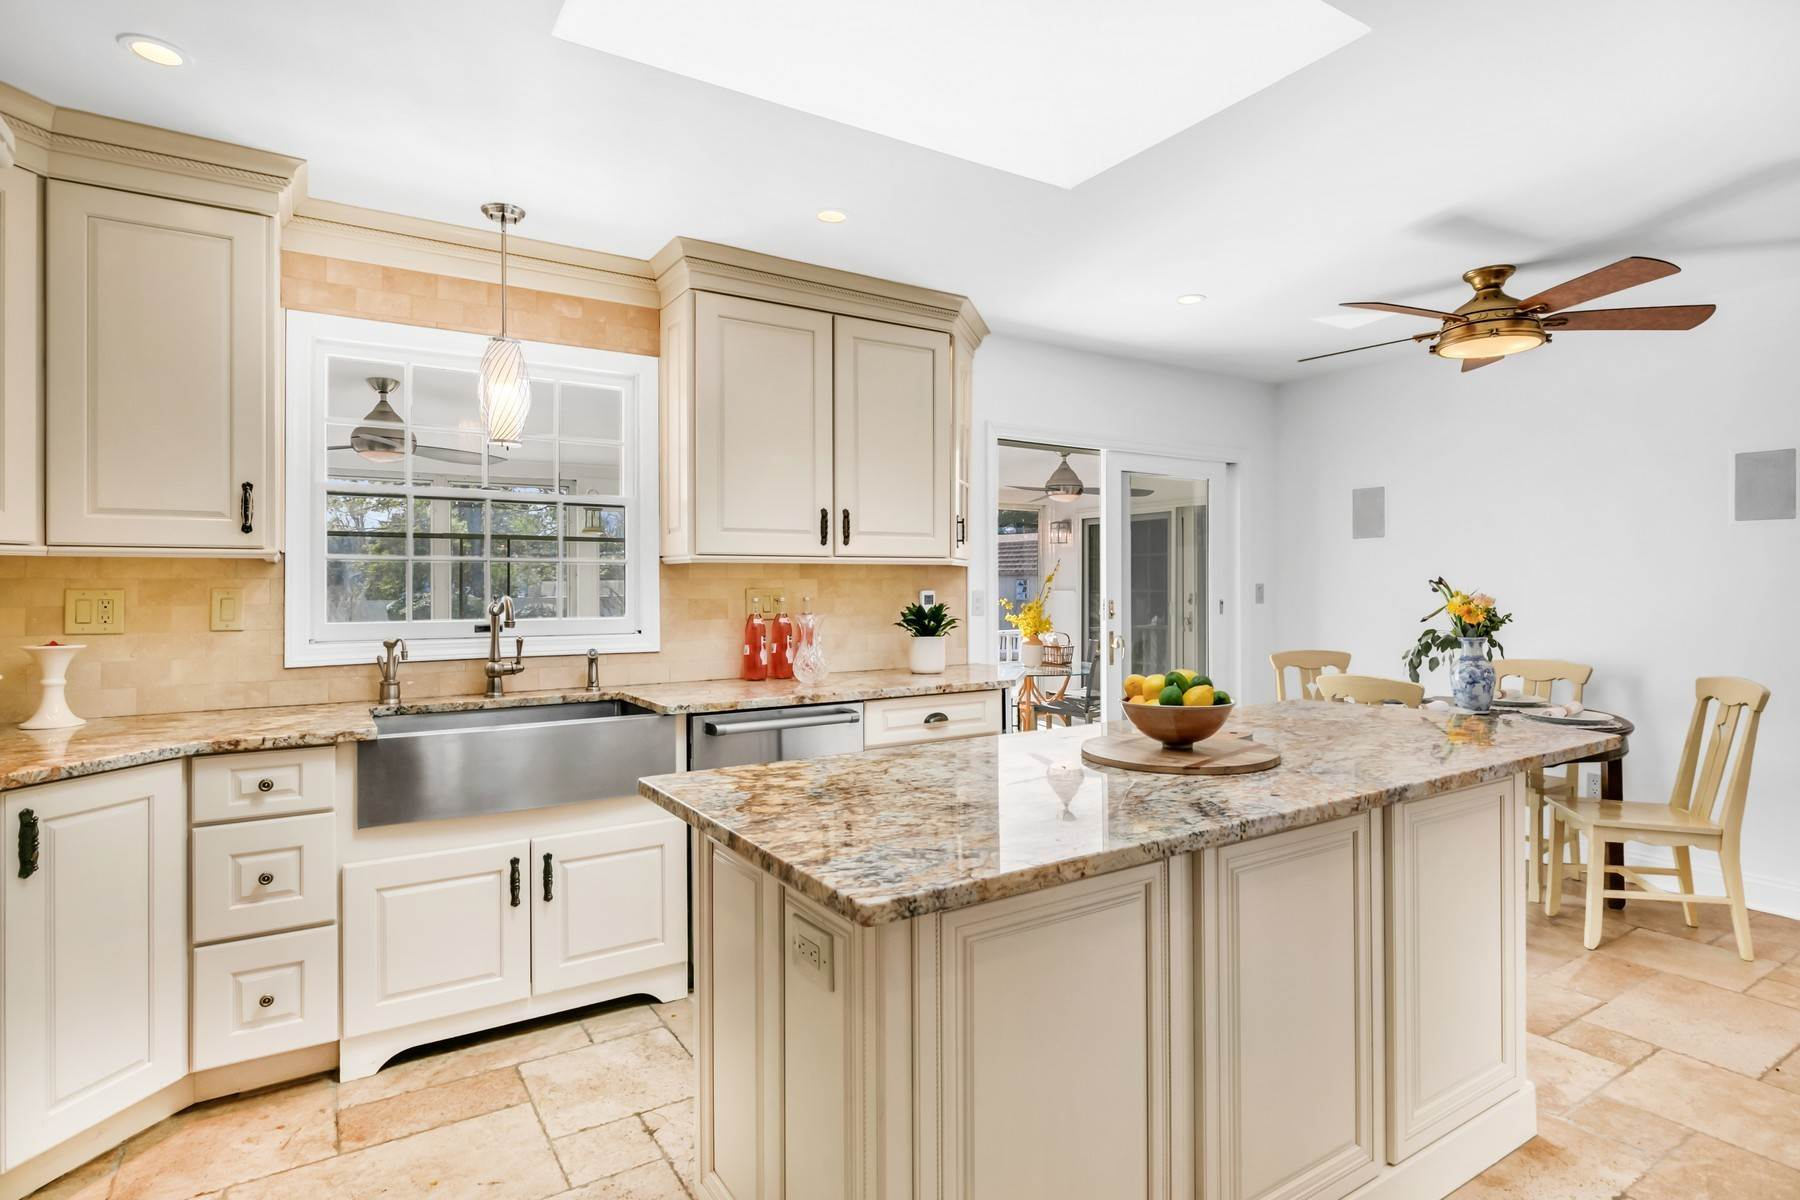 14. Single Family Homes for Sale at Elegance Meets Edgy Infused with Exceptional Quality and Custom Updates 130 Lippincott Road Little Silver, New Jersey 07739 United States